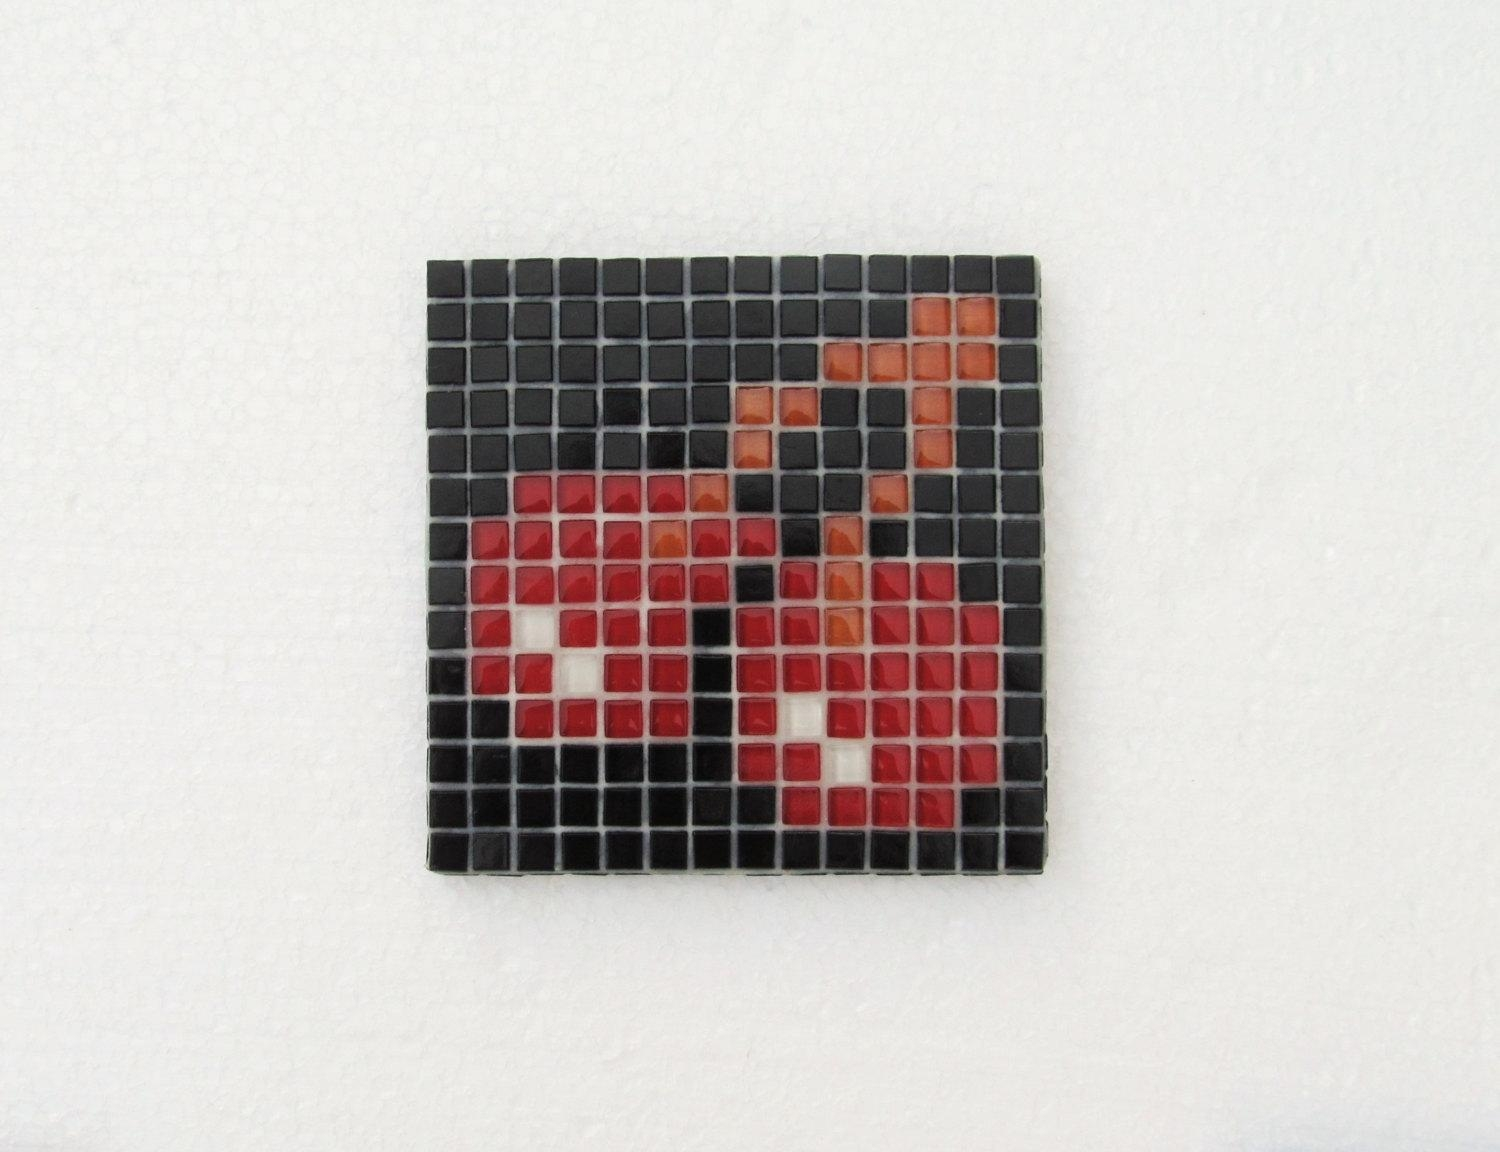 Original Pacman Mosaic Wall Art Pacman Red Cherries Pacman For Pixel Mosaic Wall Art (Image 6 of 20)